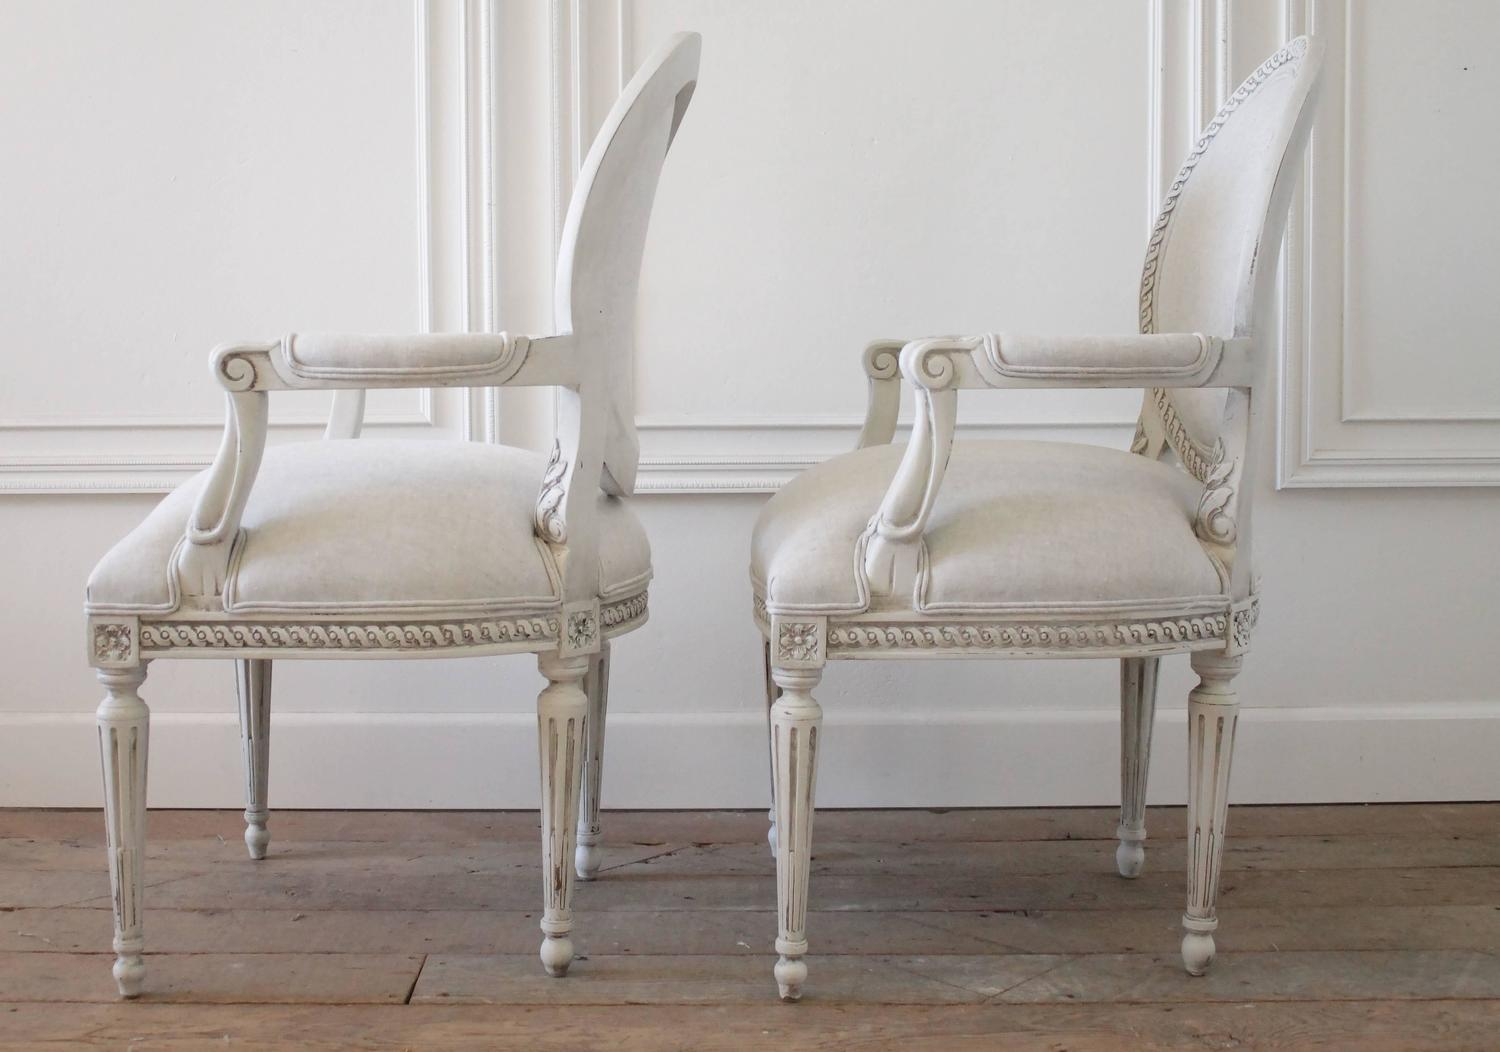 Set Of 12 French Louis XVI Style Dining Chairs Upholstered In Natural Linen F